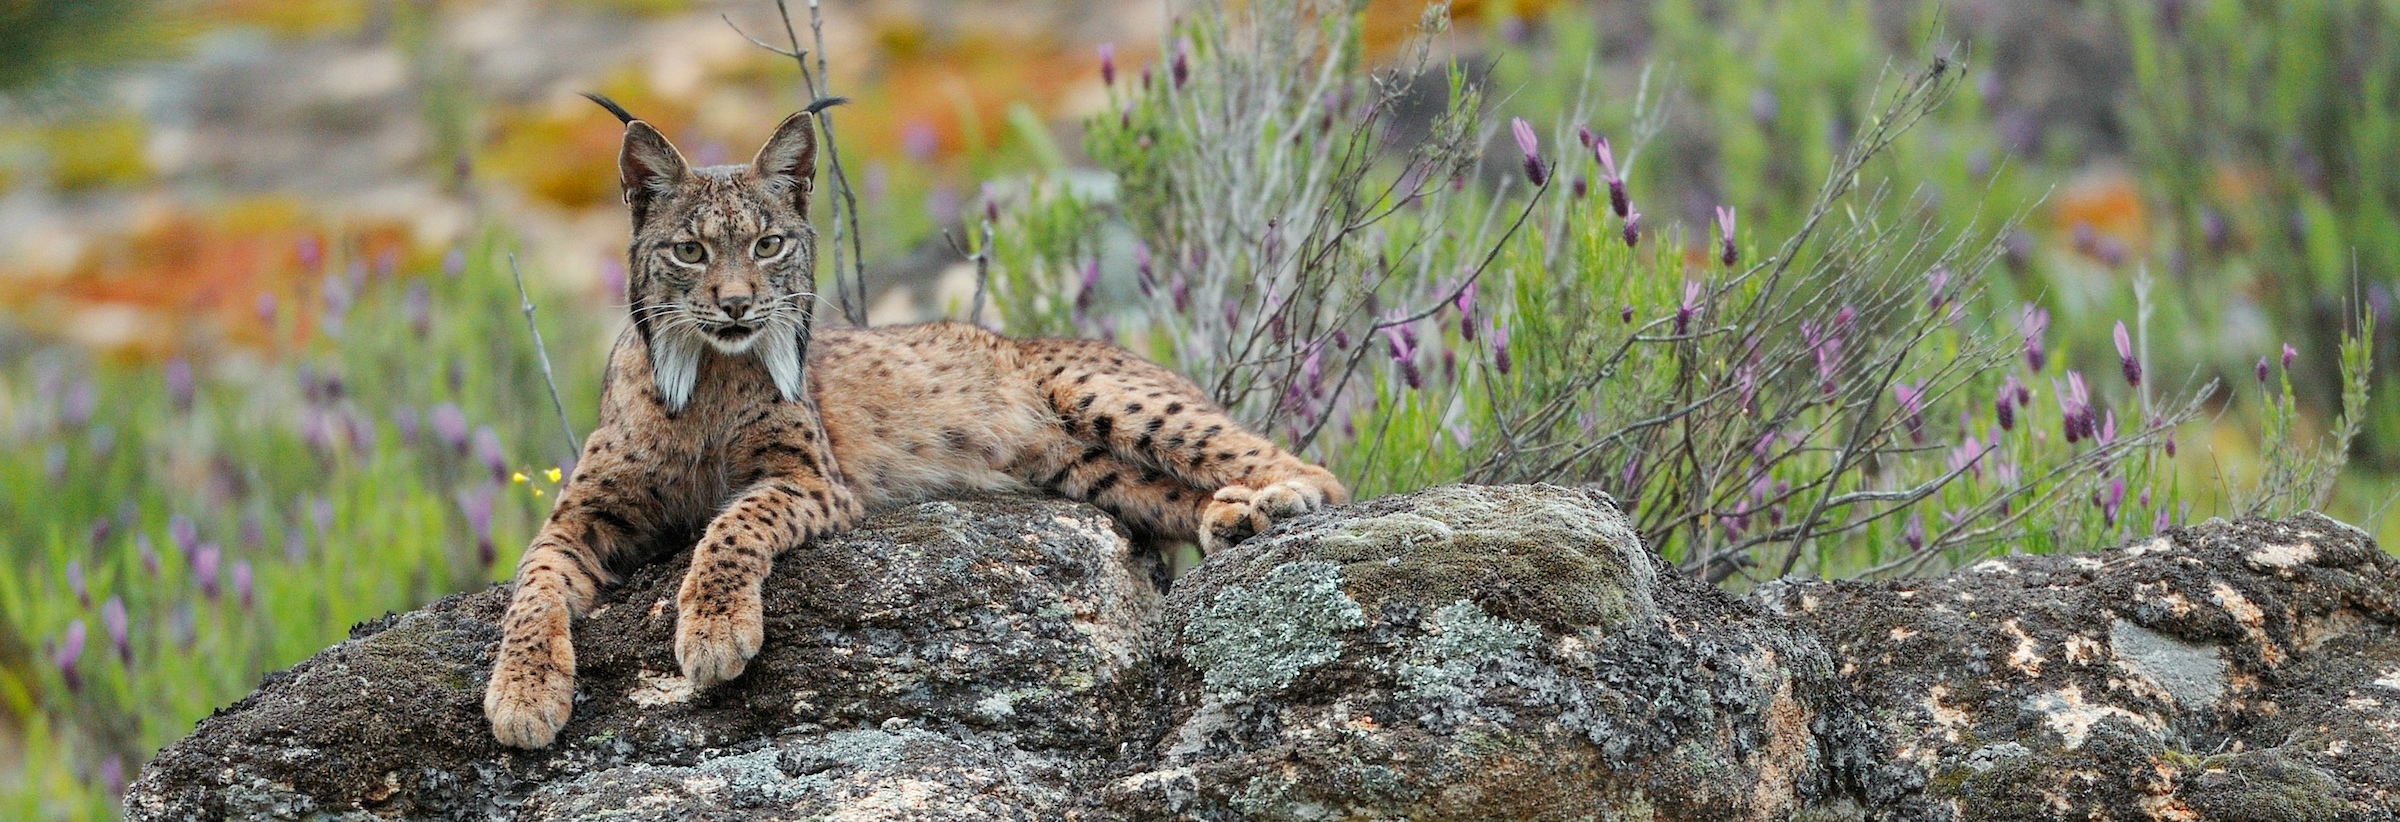 Wildlife in the Côa Valley is already making a comeback. An Iberian lynx (pictured) was recently spotted here for the first time.